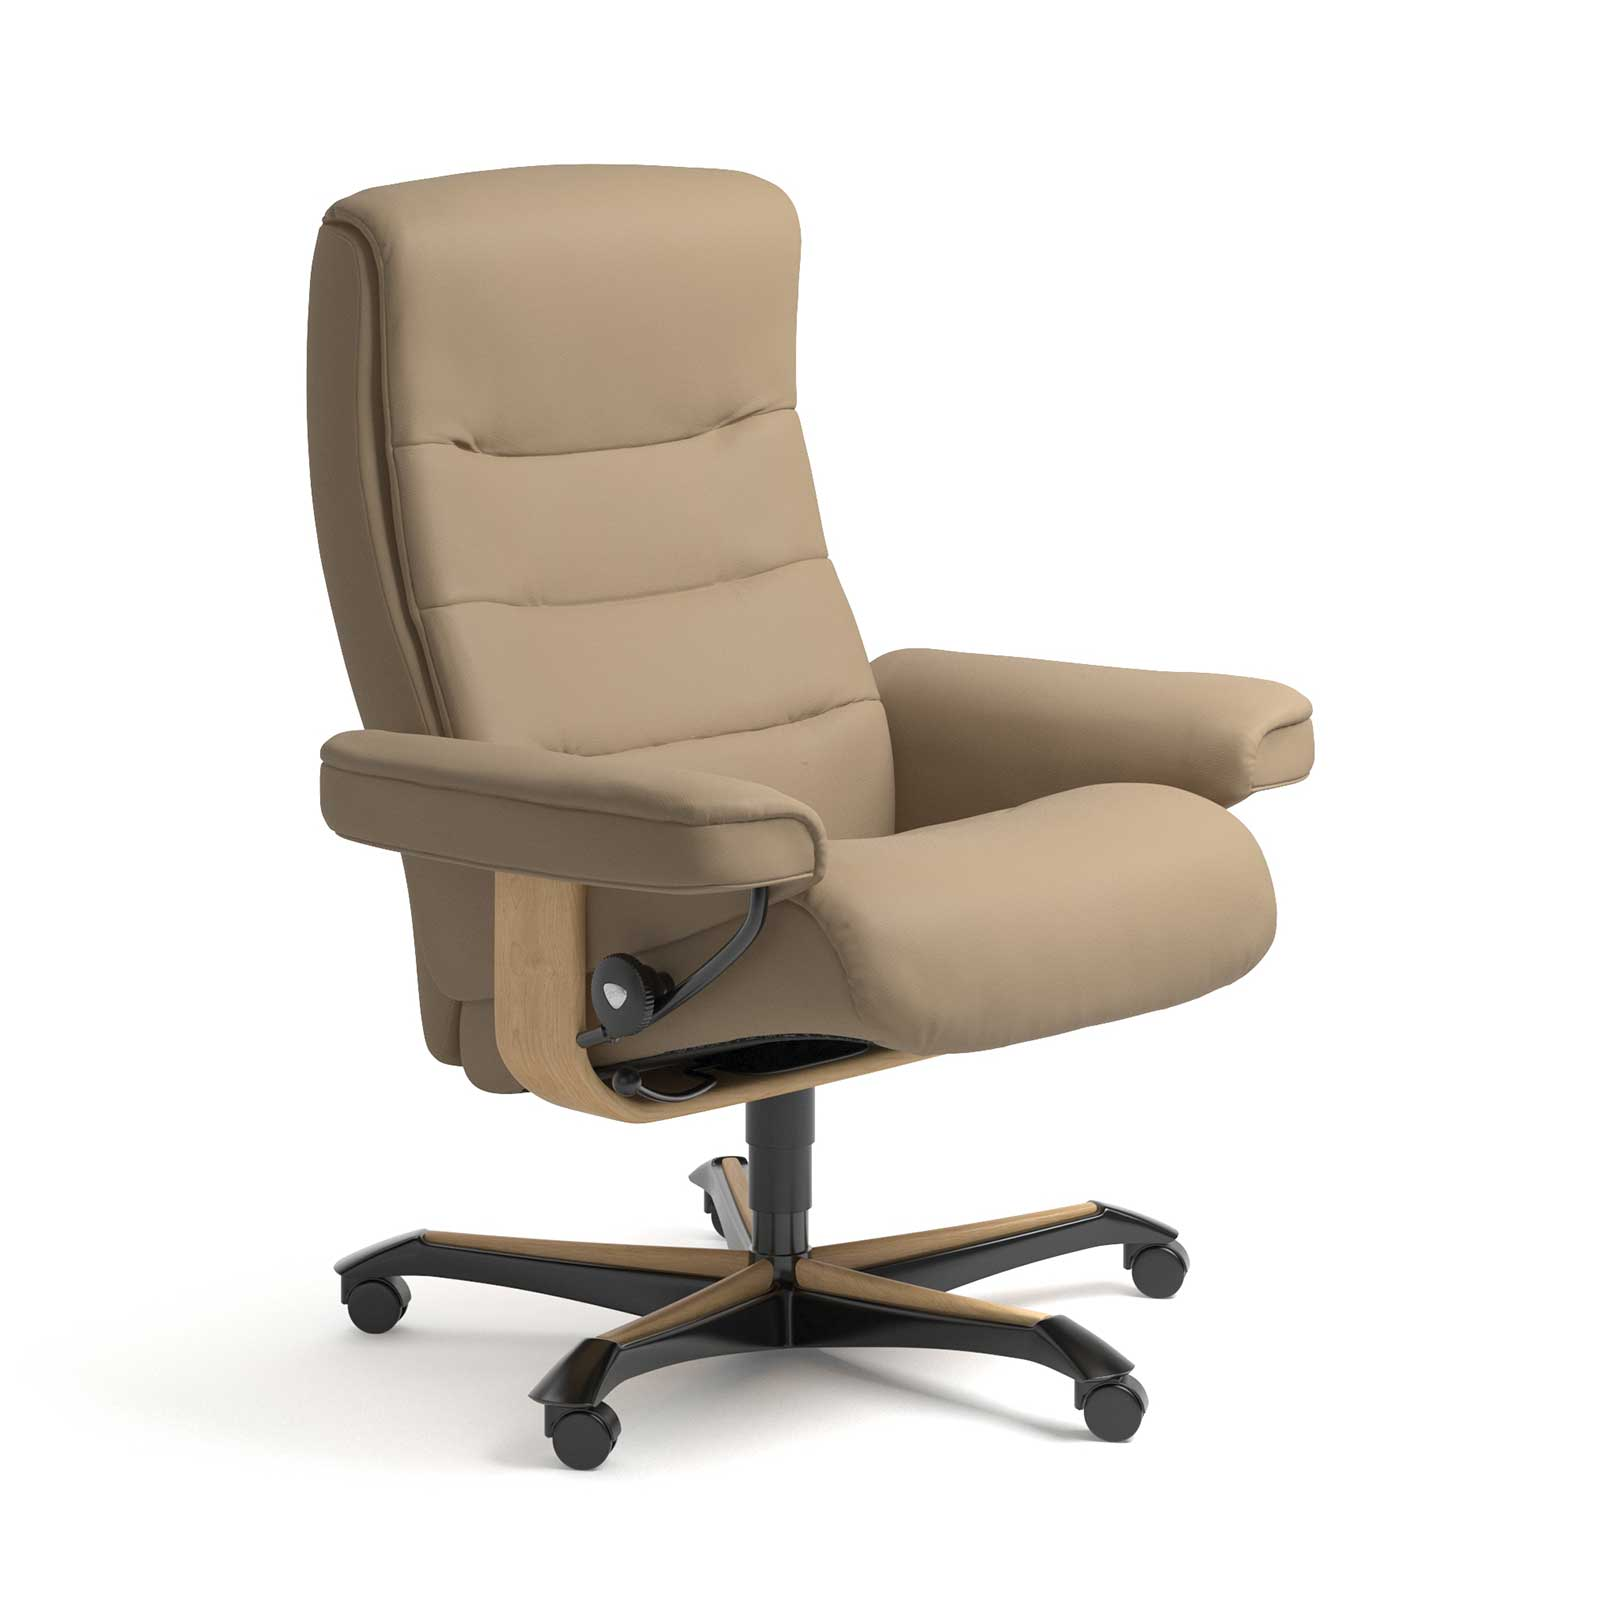 Sessel Marken Stressless Sessel Nordic Home Office Leder Paloma Funghi